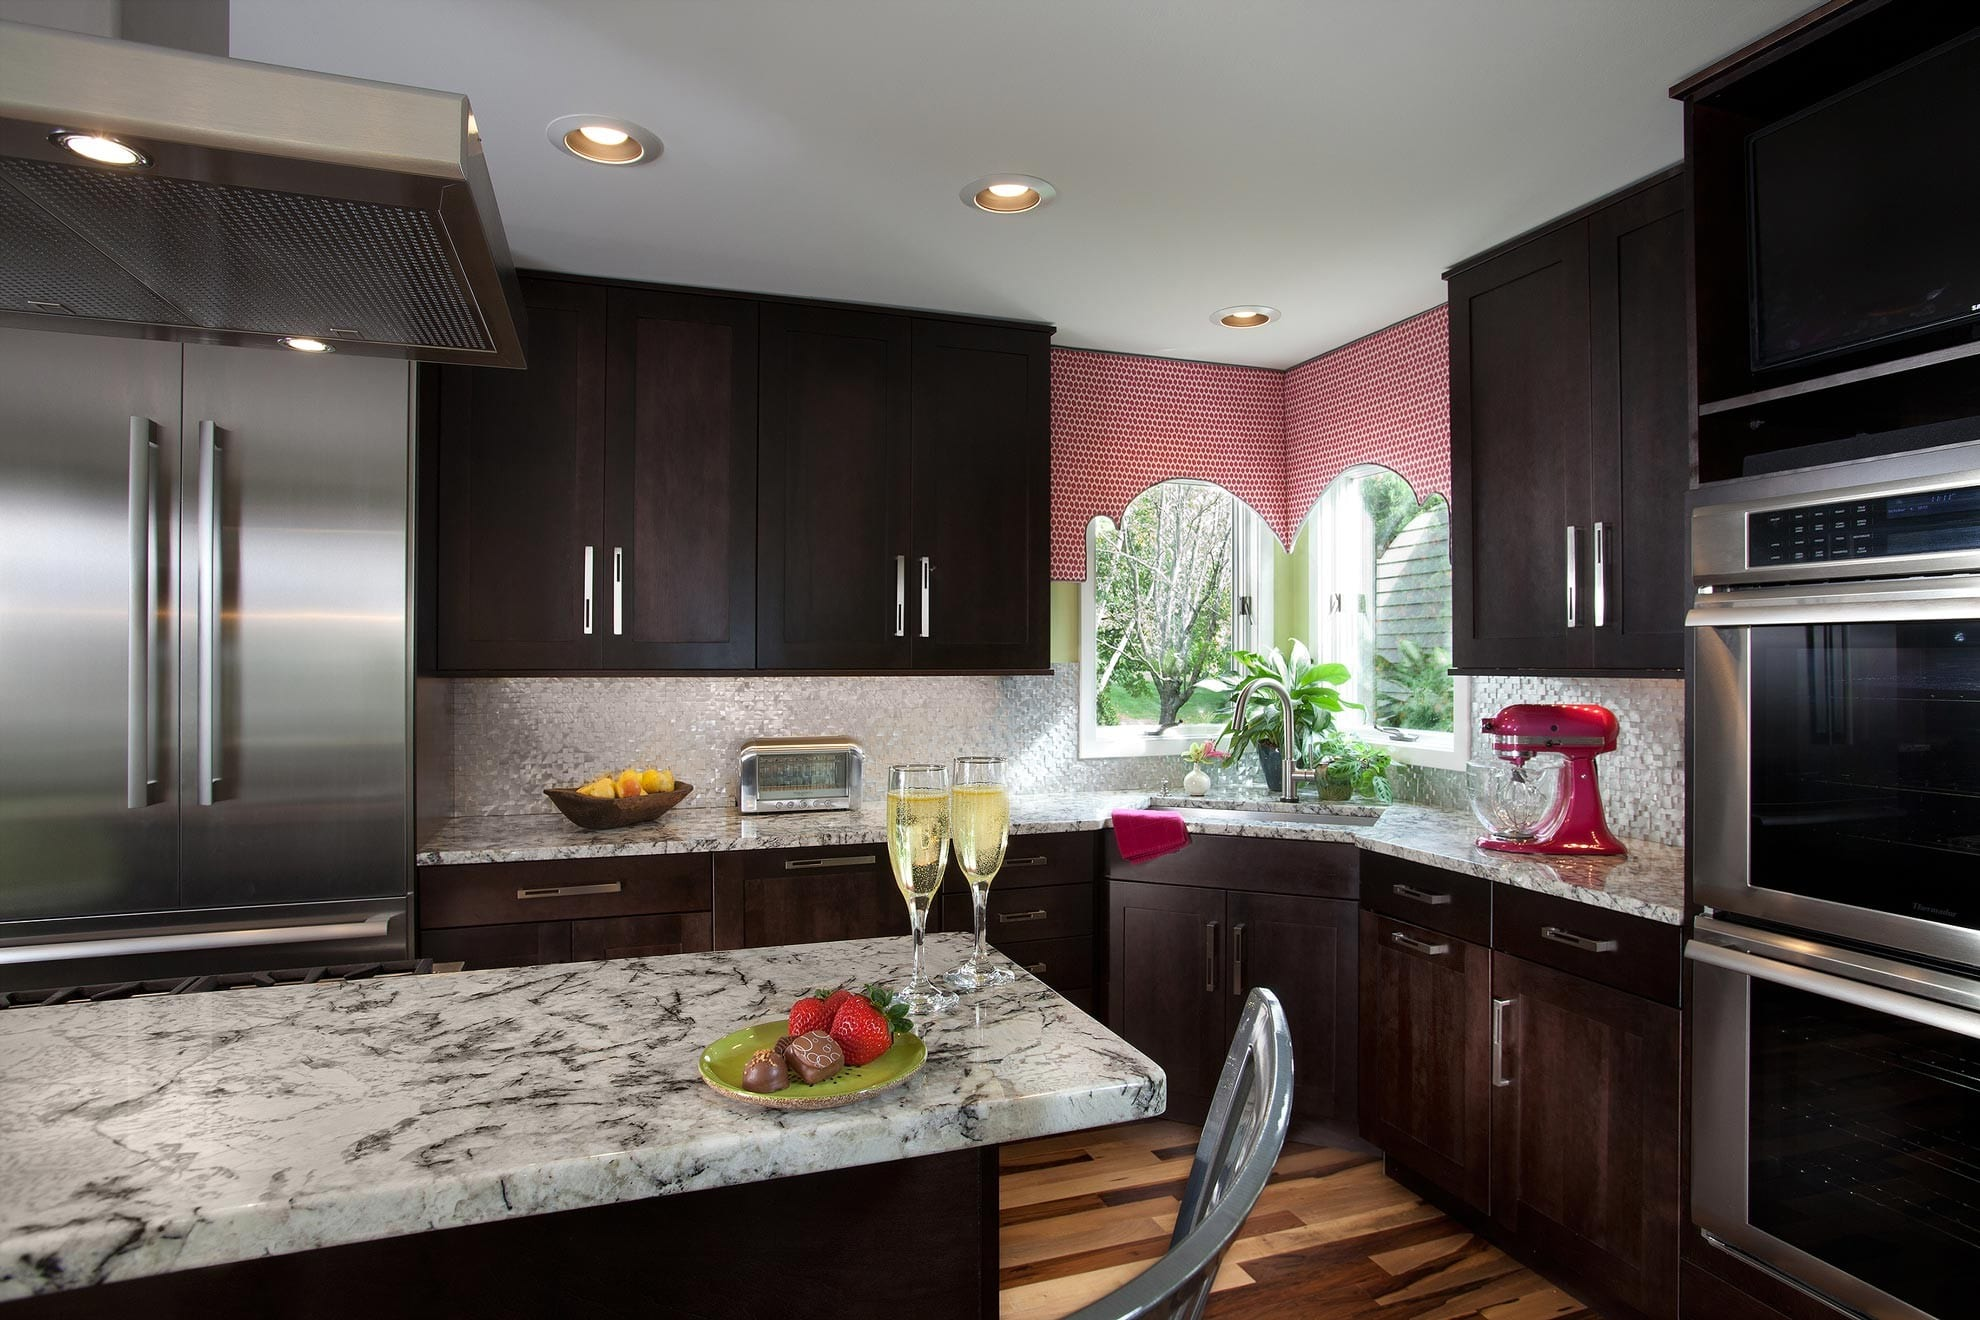 kitchen remodeling projects outdoor ideas for small spaces harrisburg pa contemporary renovation mother